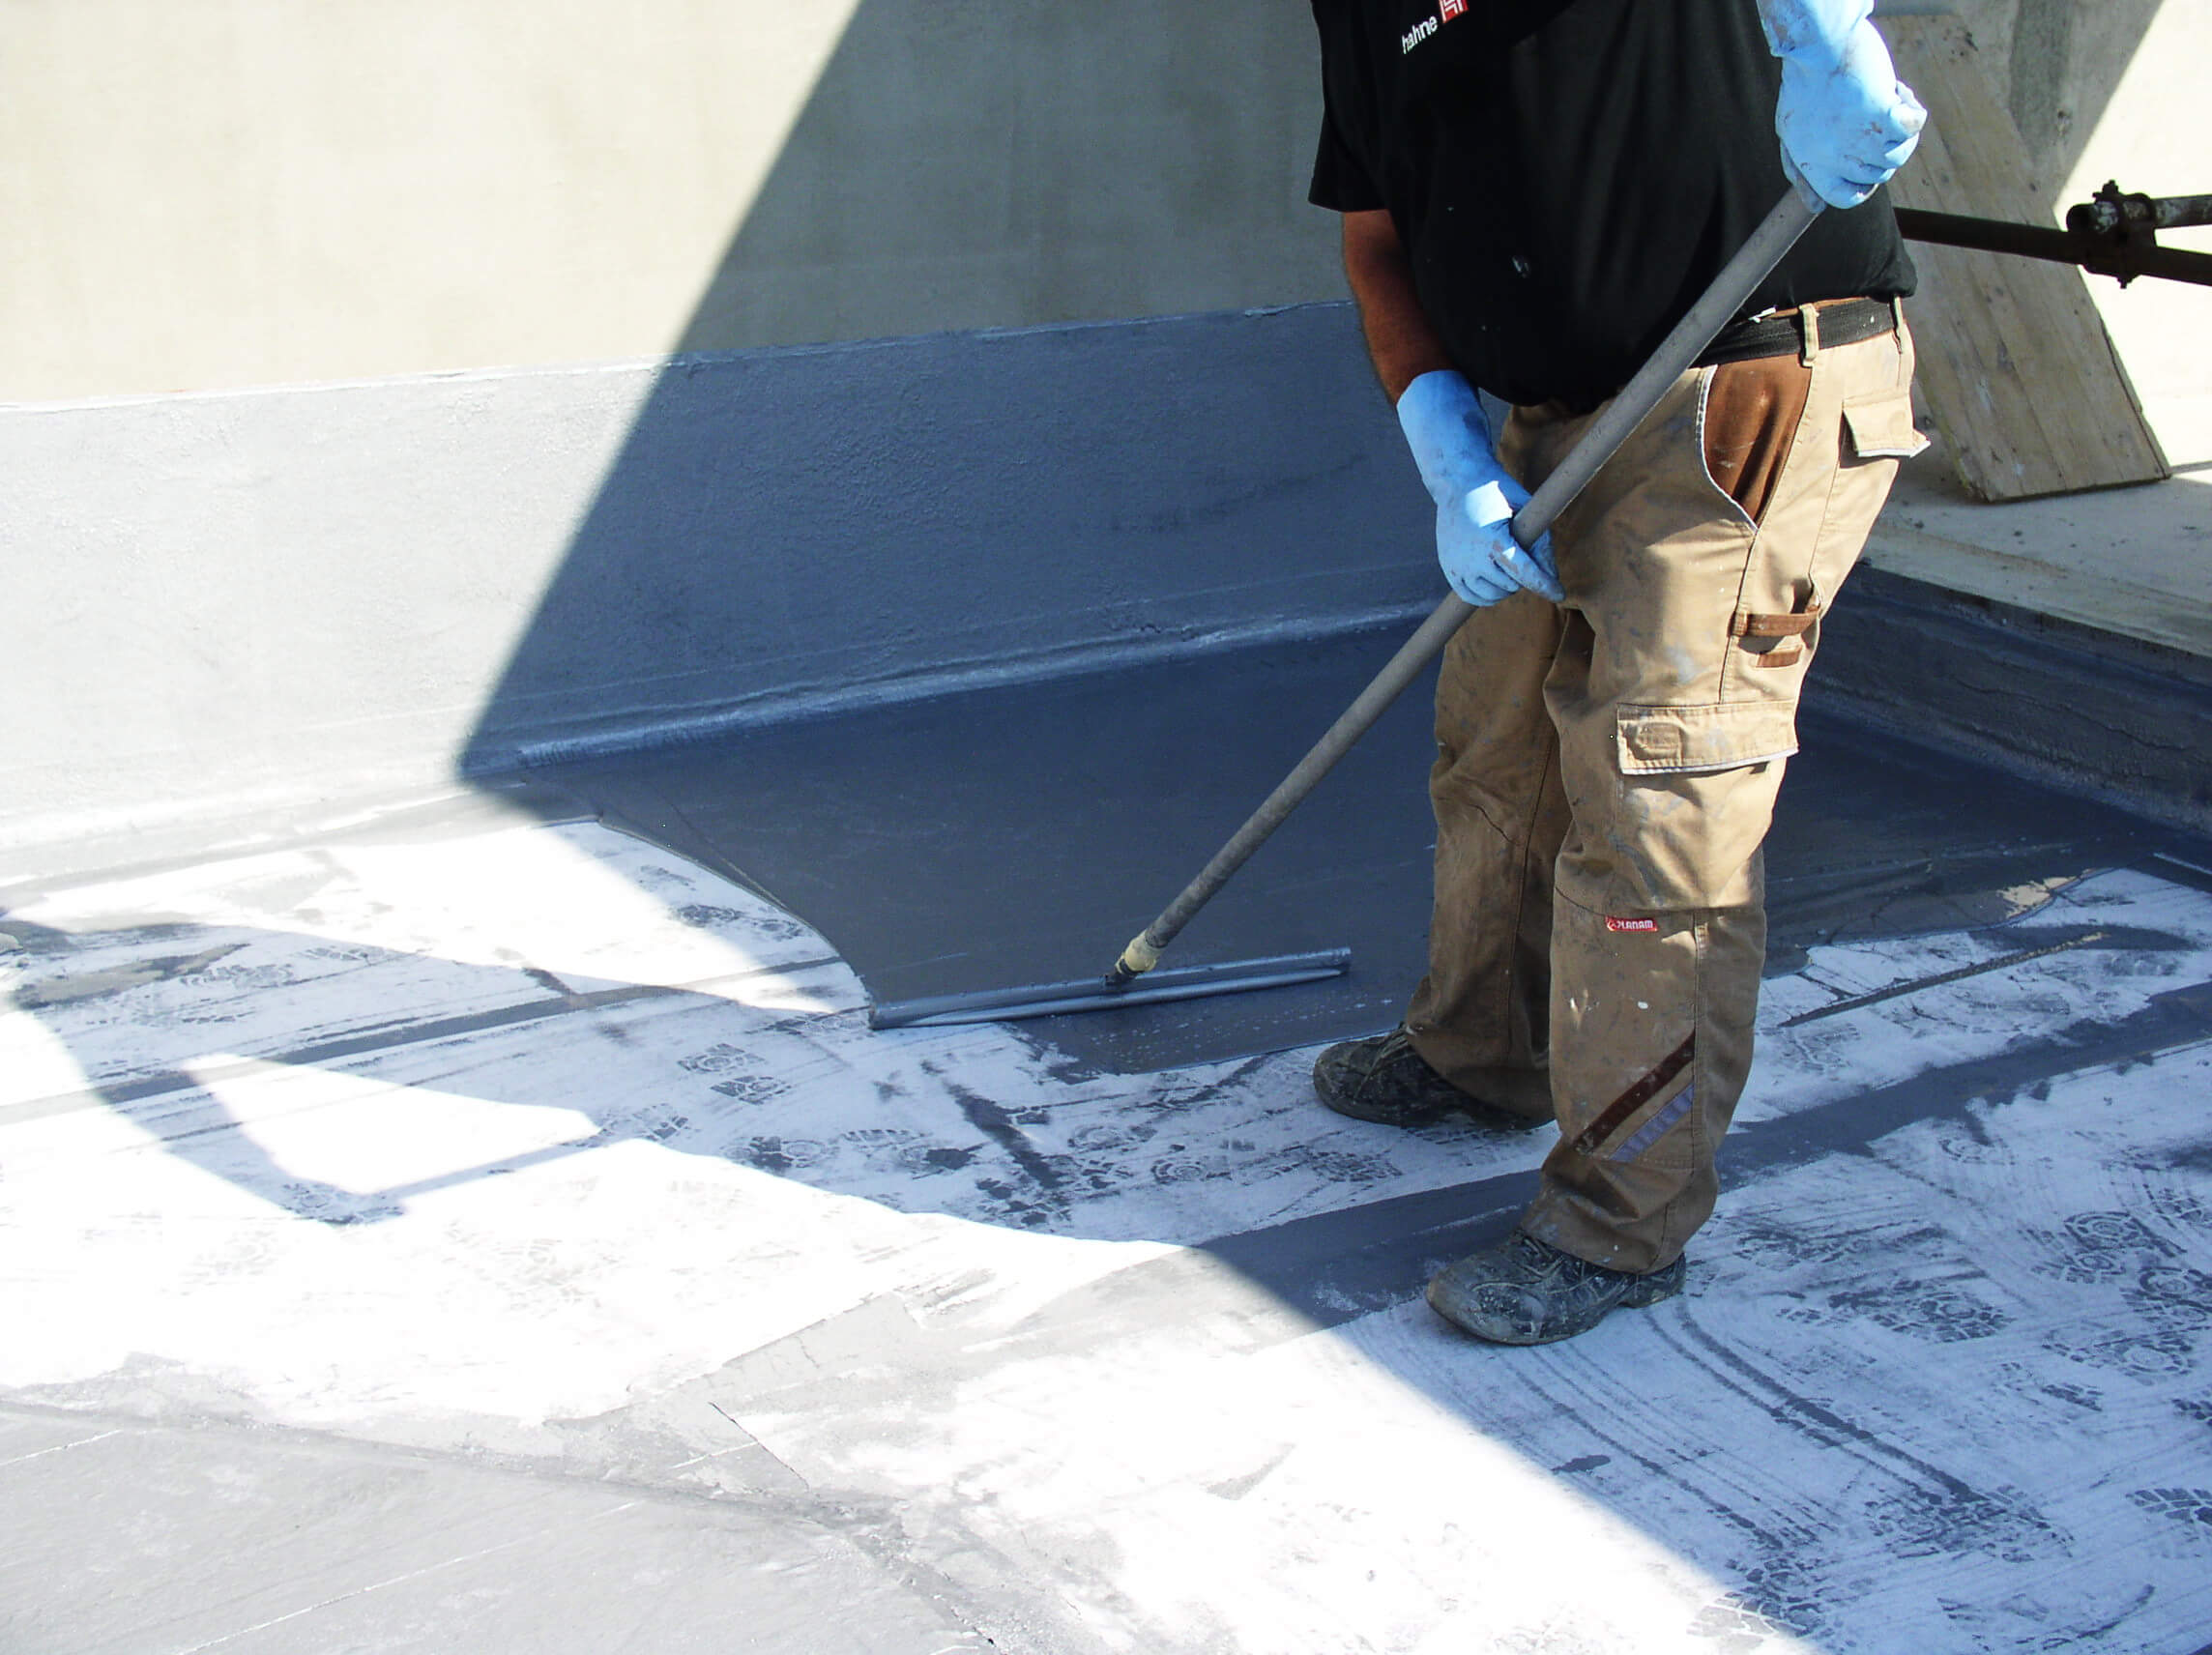 Second waterproofing layer